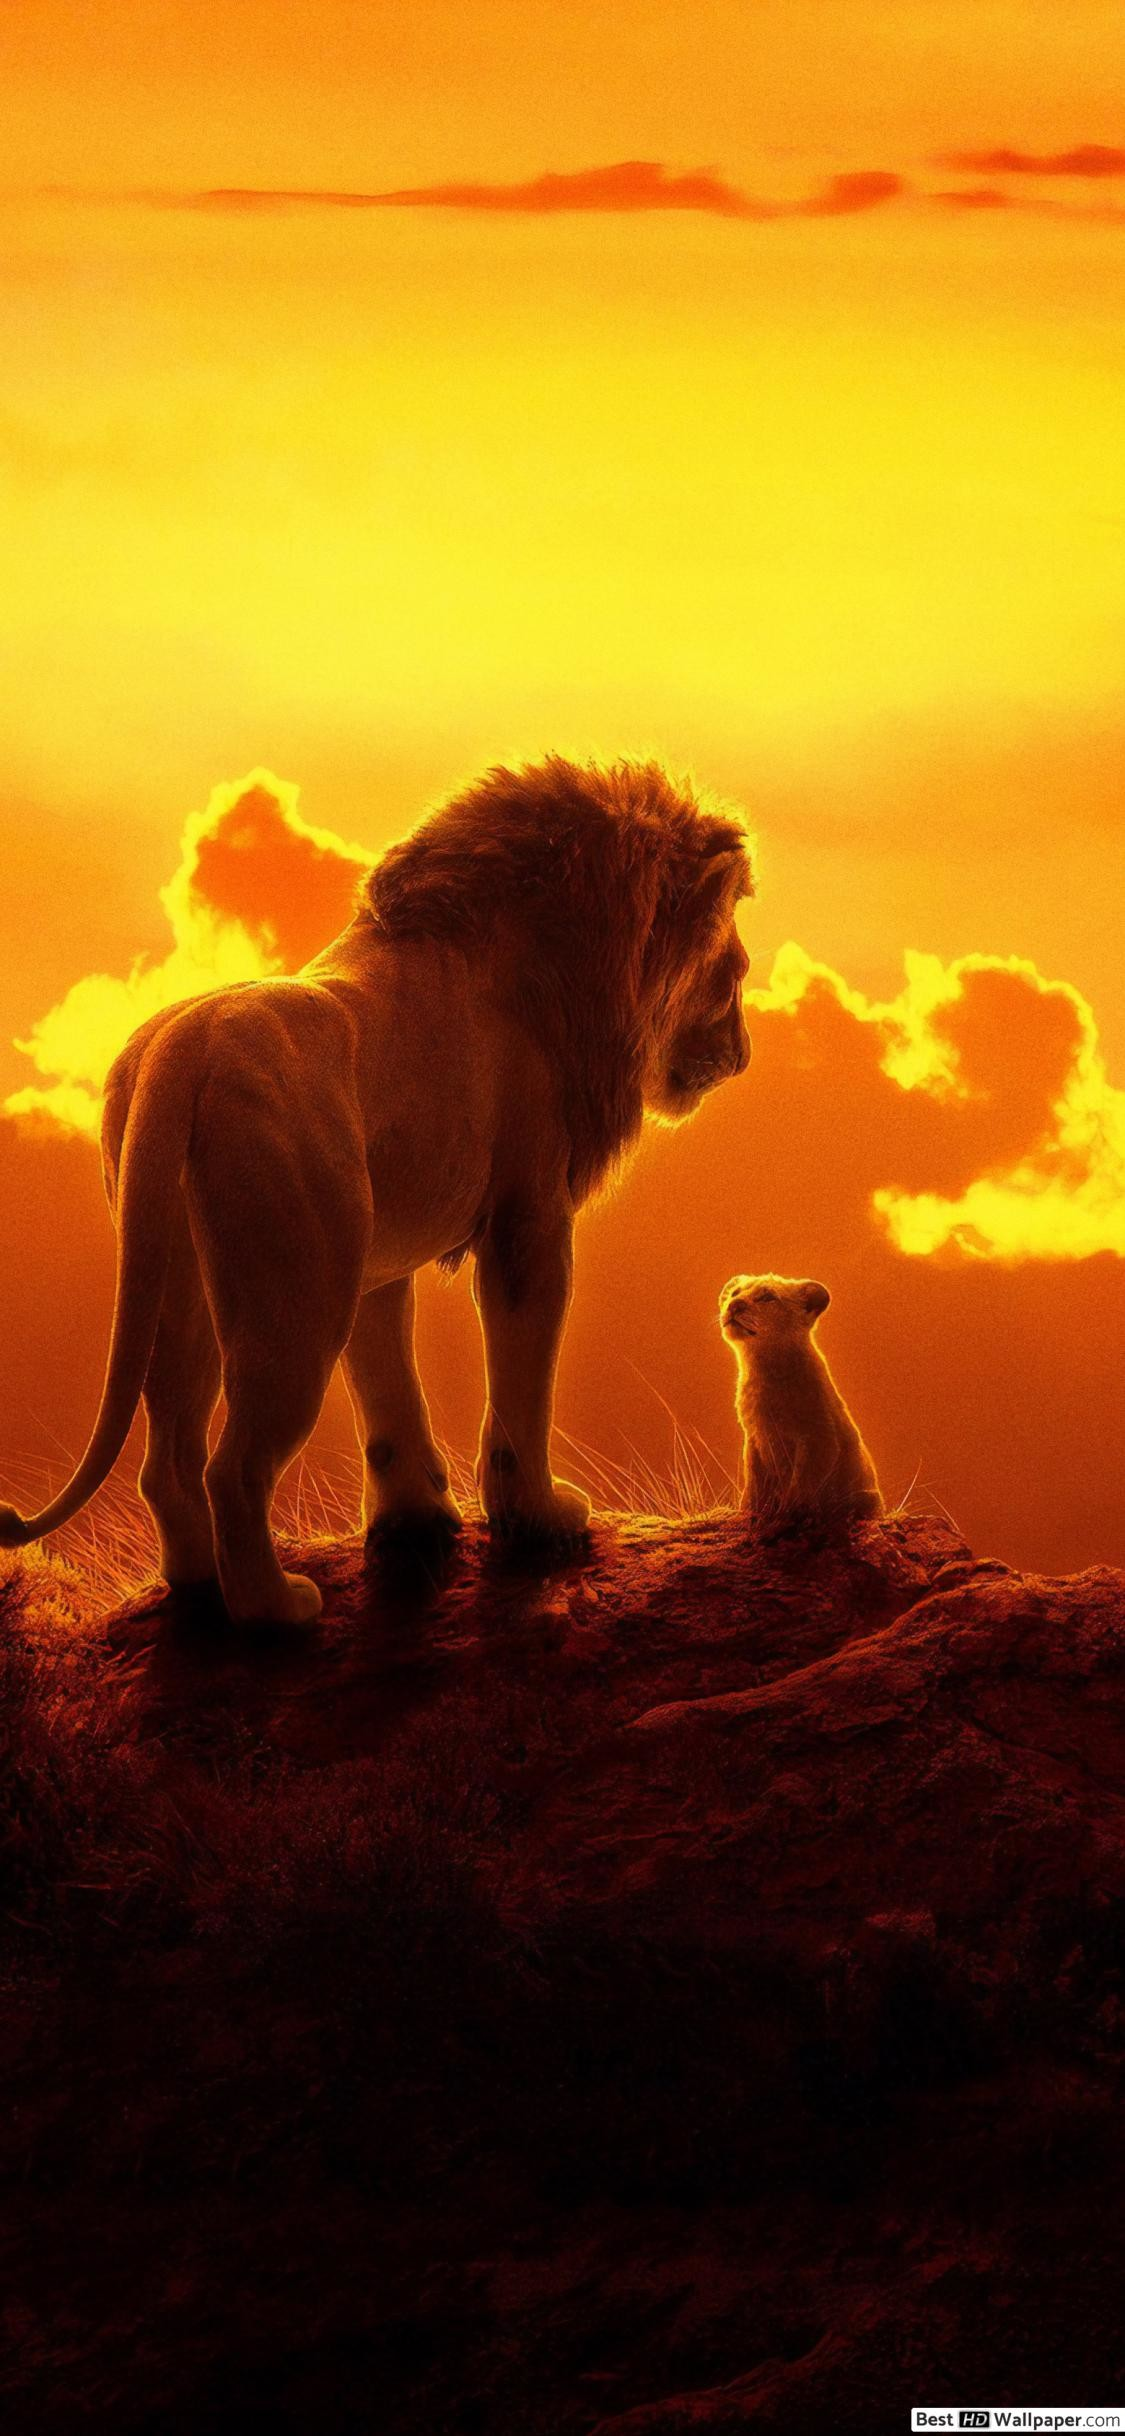 Lion King iPhone Wallpaper (89+ images)